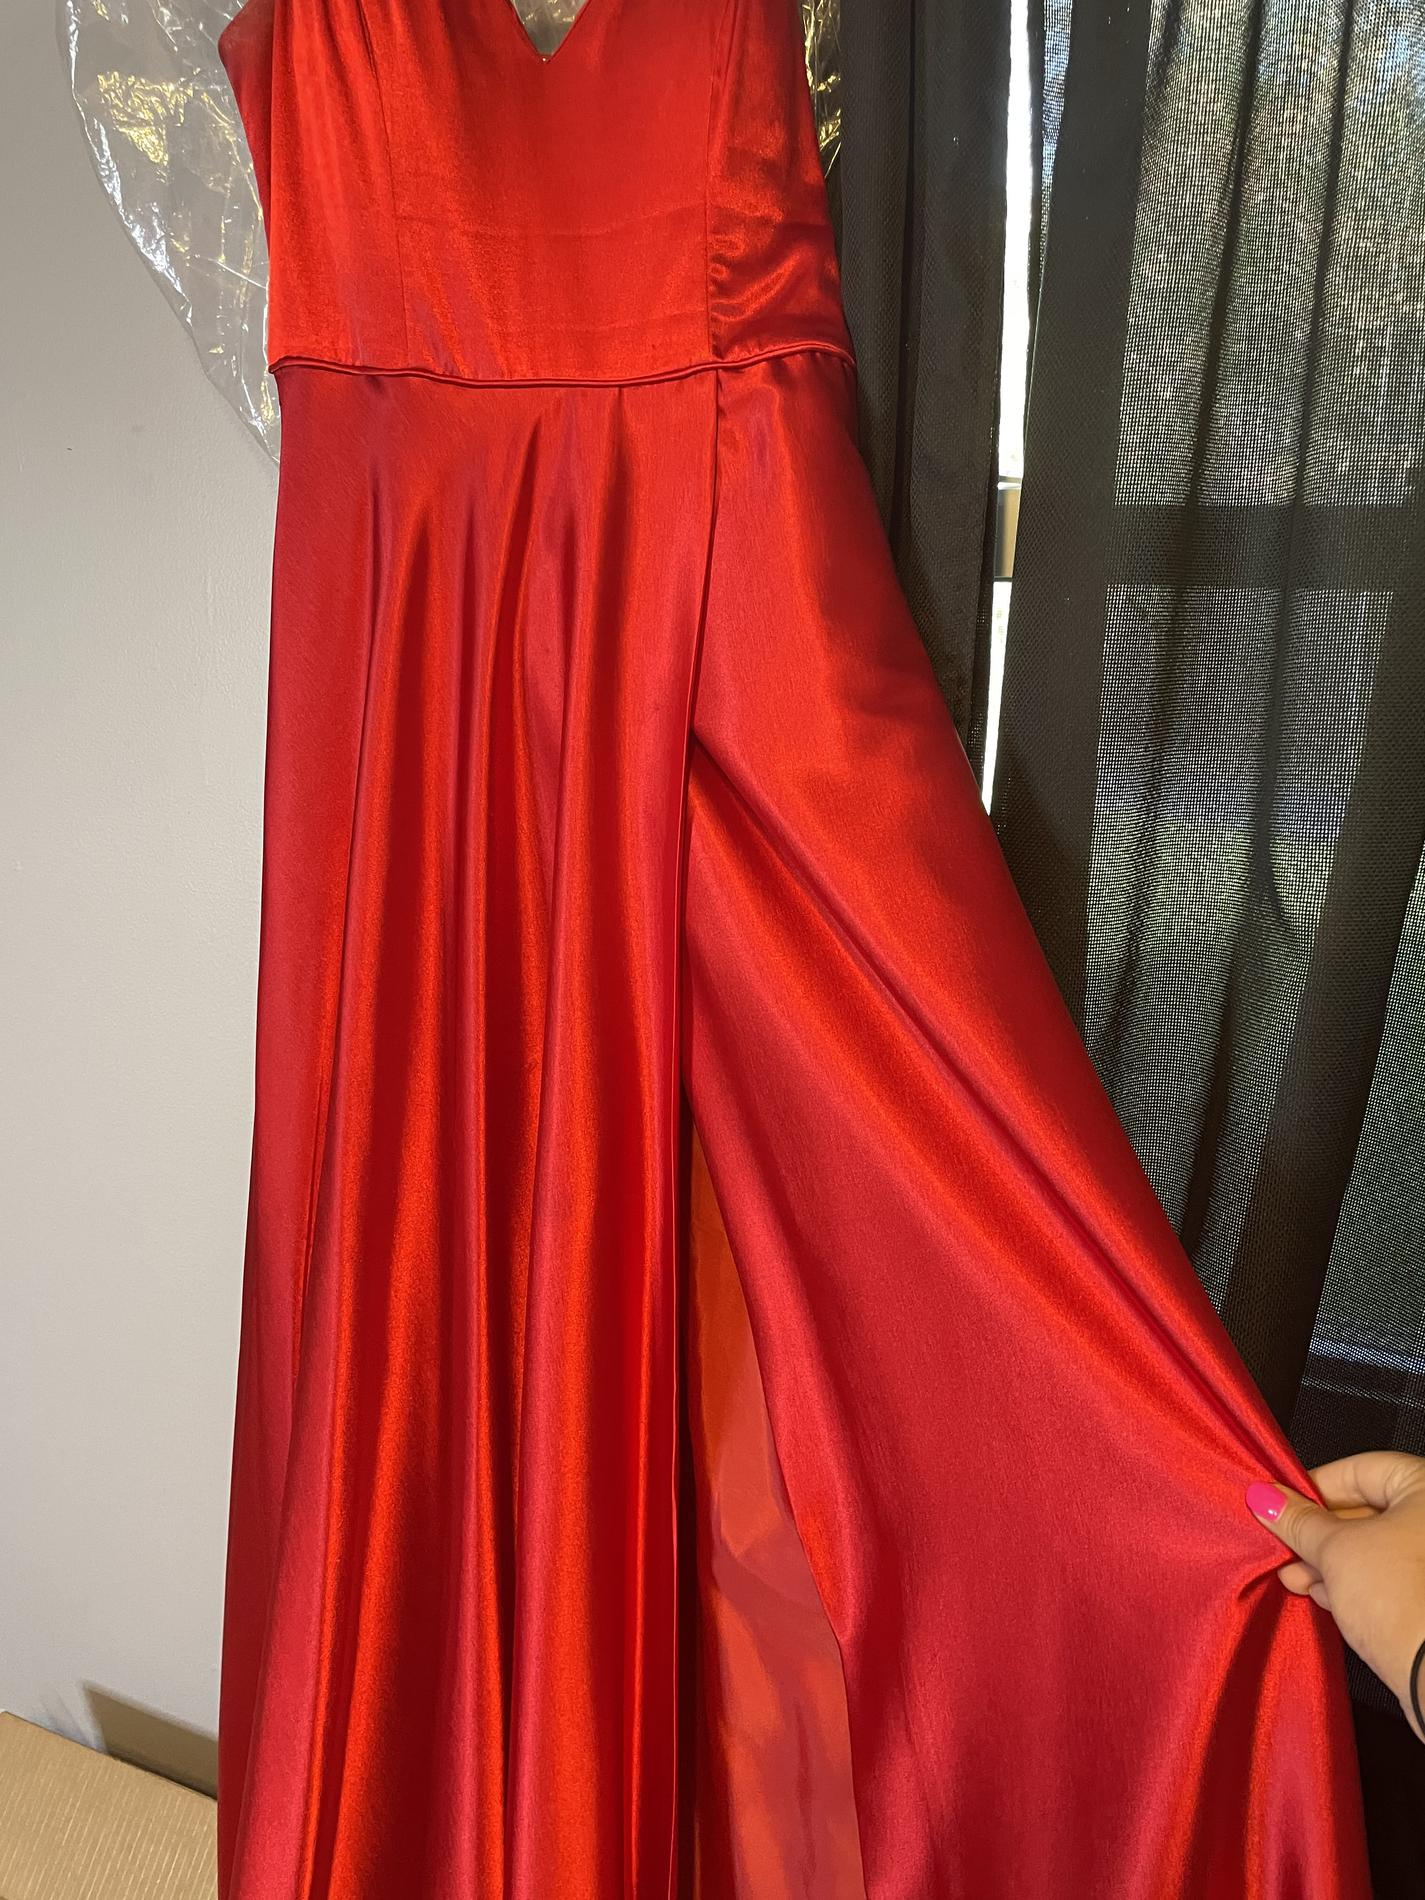 Windsor Red Size 10 Prom Sorority Formal Straight Dress on Queenly